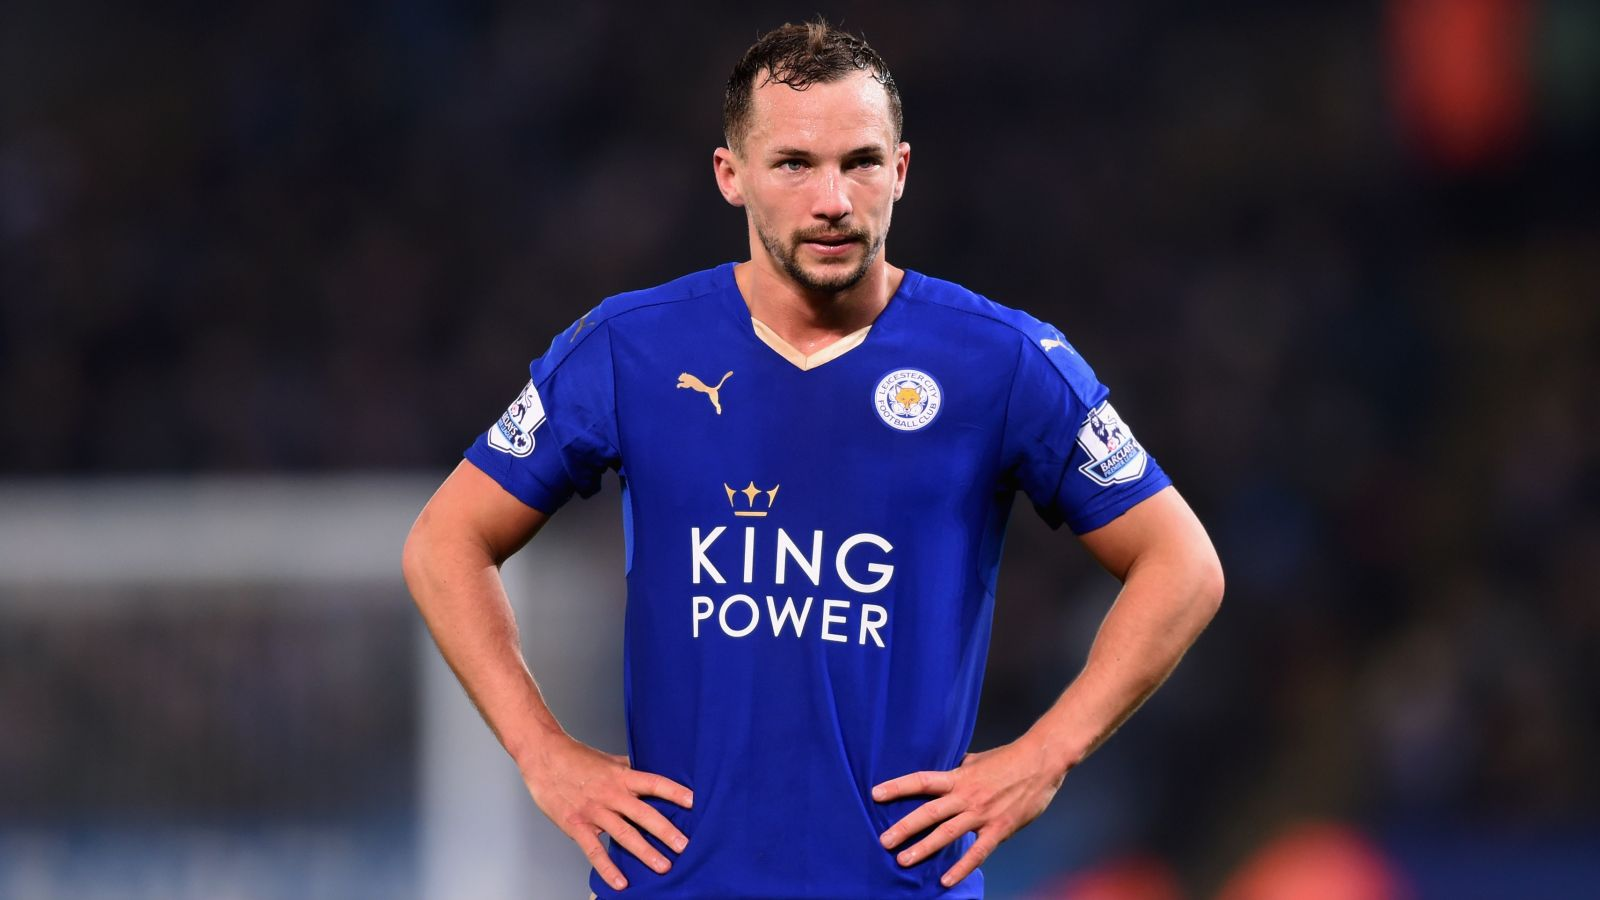 Leicester star Drinkwater earns first-ever England call-up